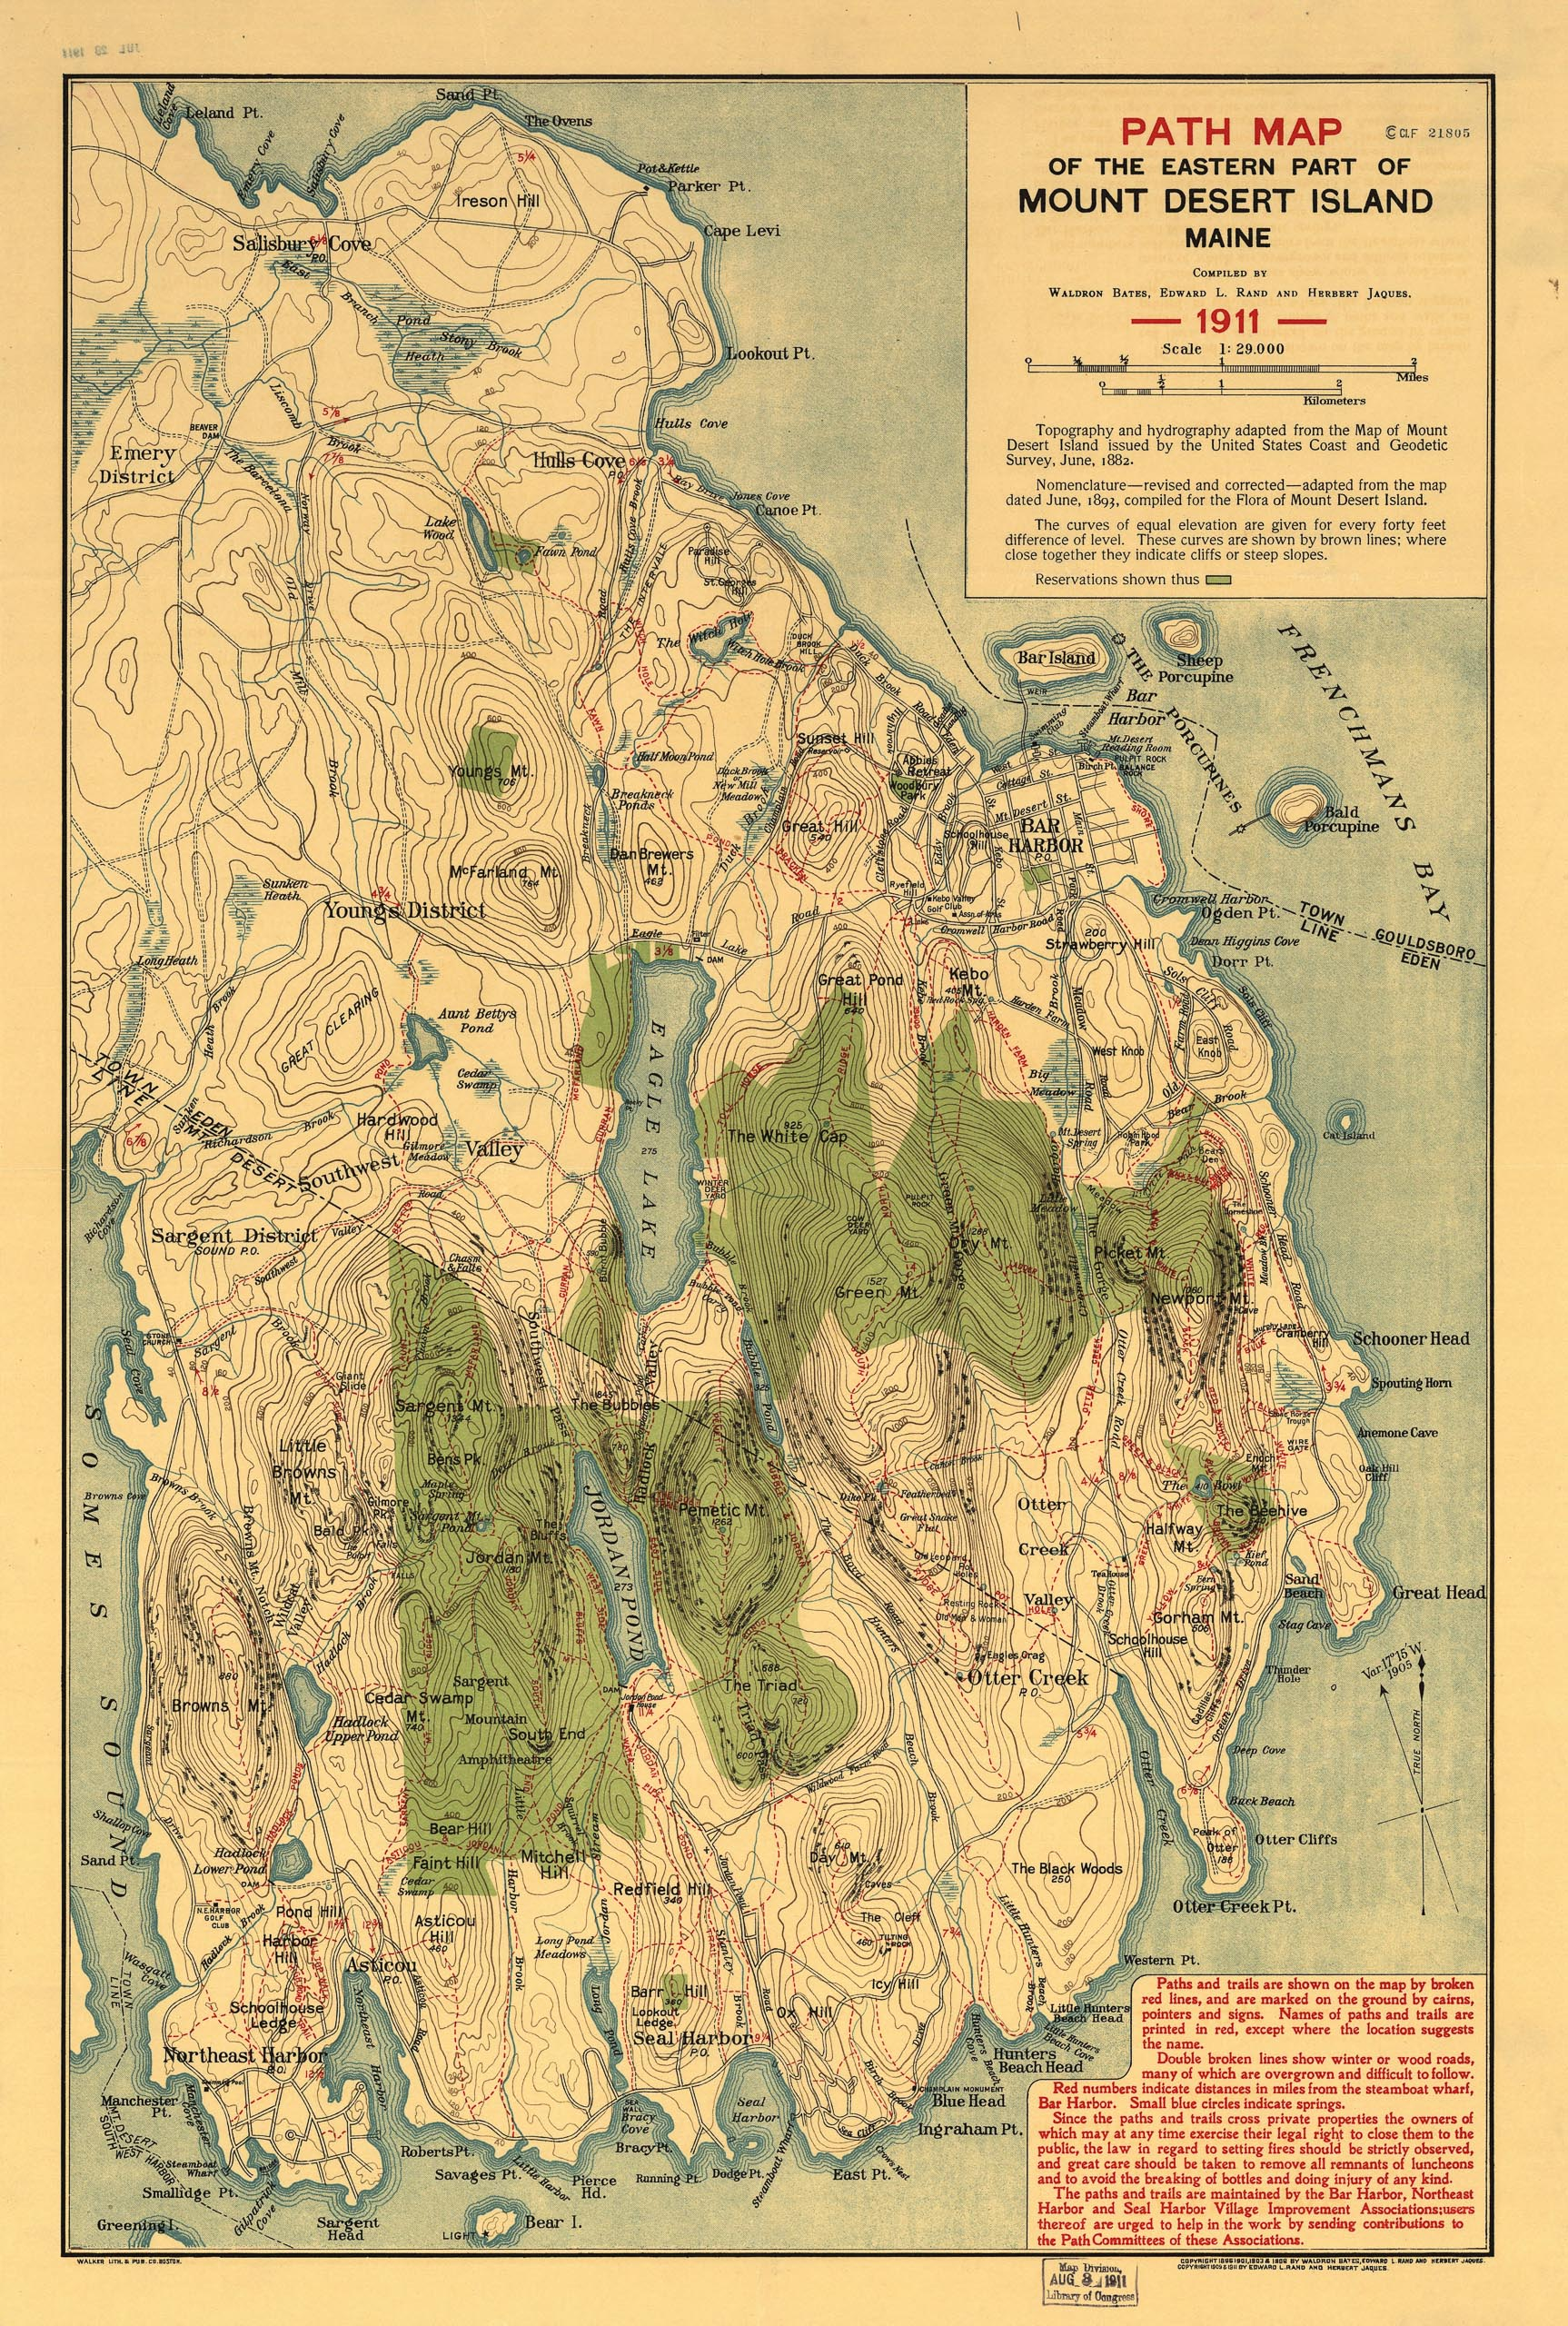 1911 Path Map of the Eastern Part of Mount Desert Island, Maine